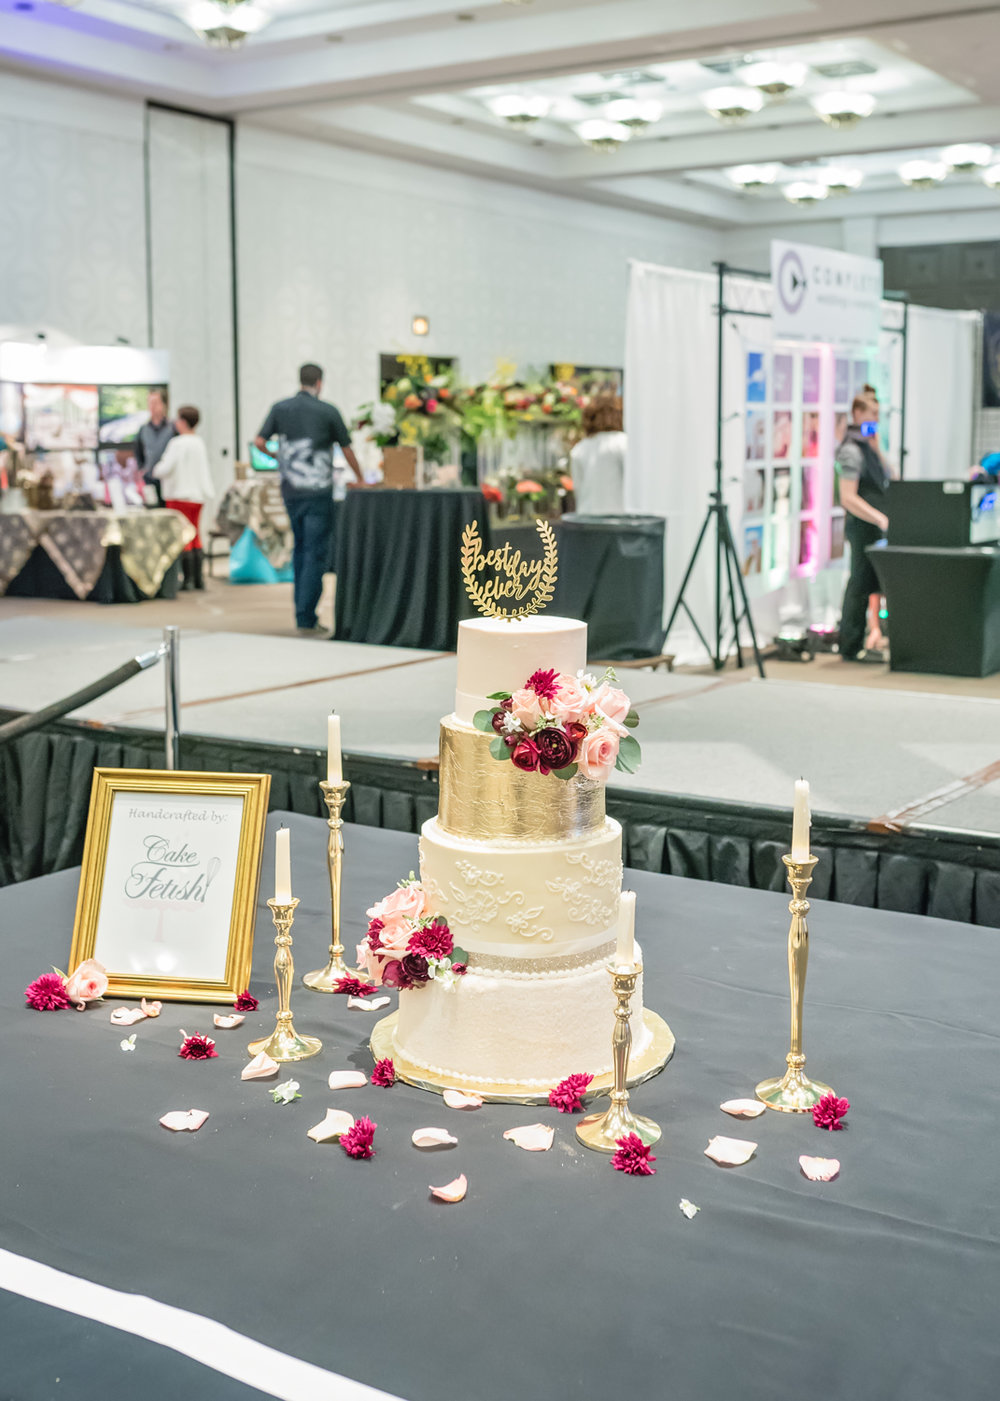 Perfect Wedding Guide Diamond Dash Wedding Expo, Albuquerque, New Mexico, Southwest Wedding Photographer, Santa Fe Wedding Photographer, Rio Rancho Wedding Photographer